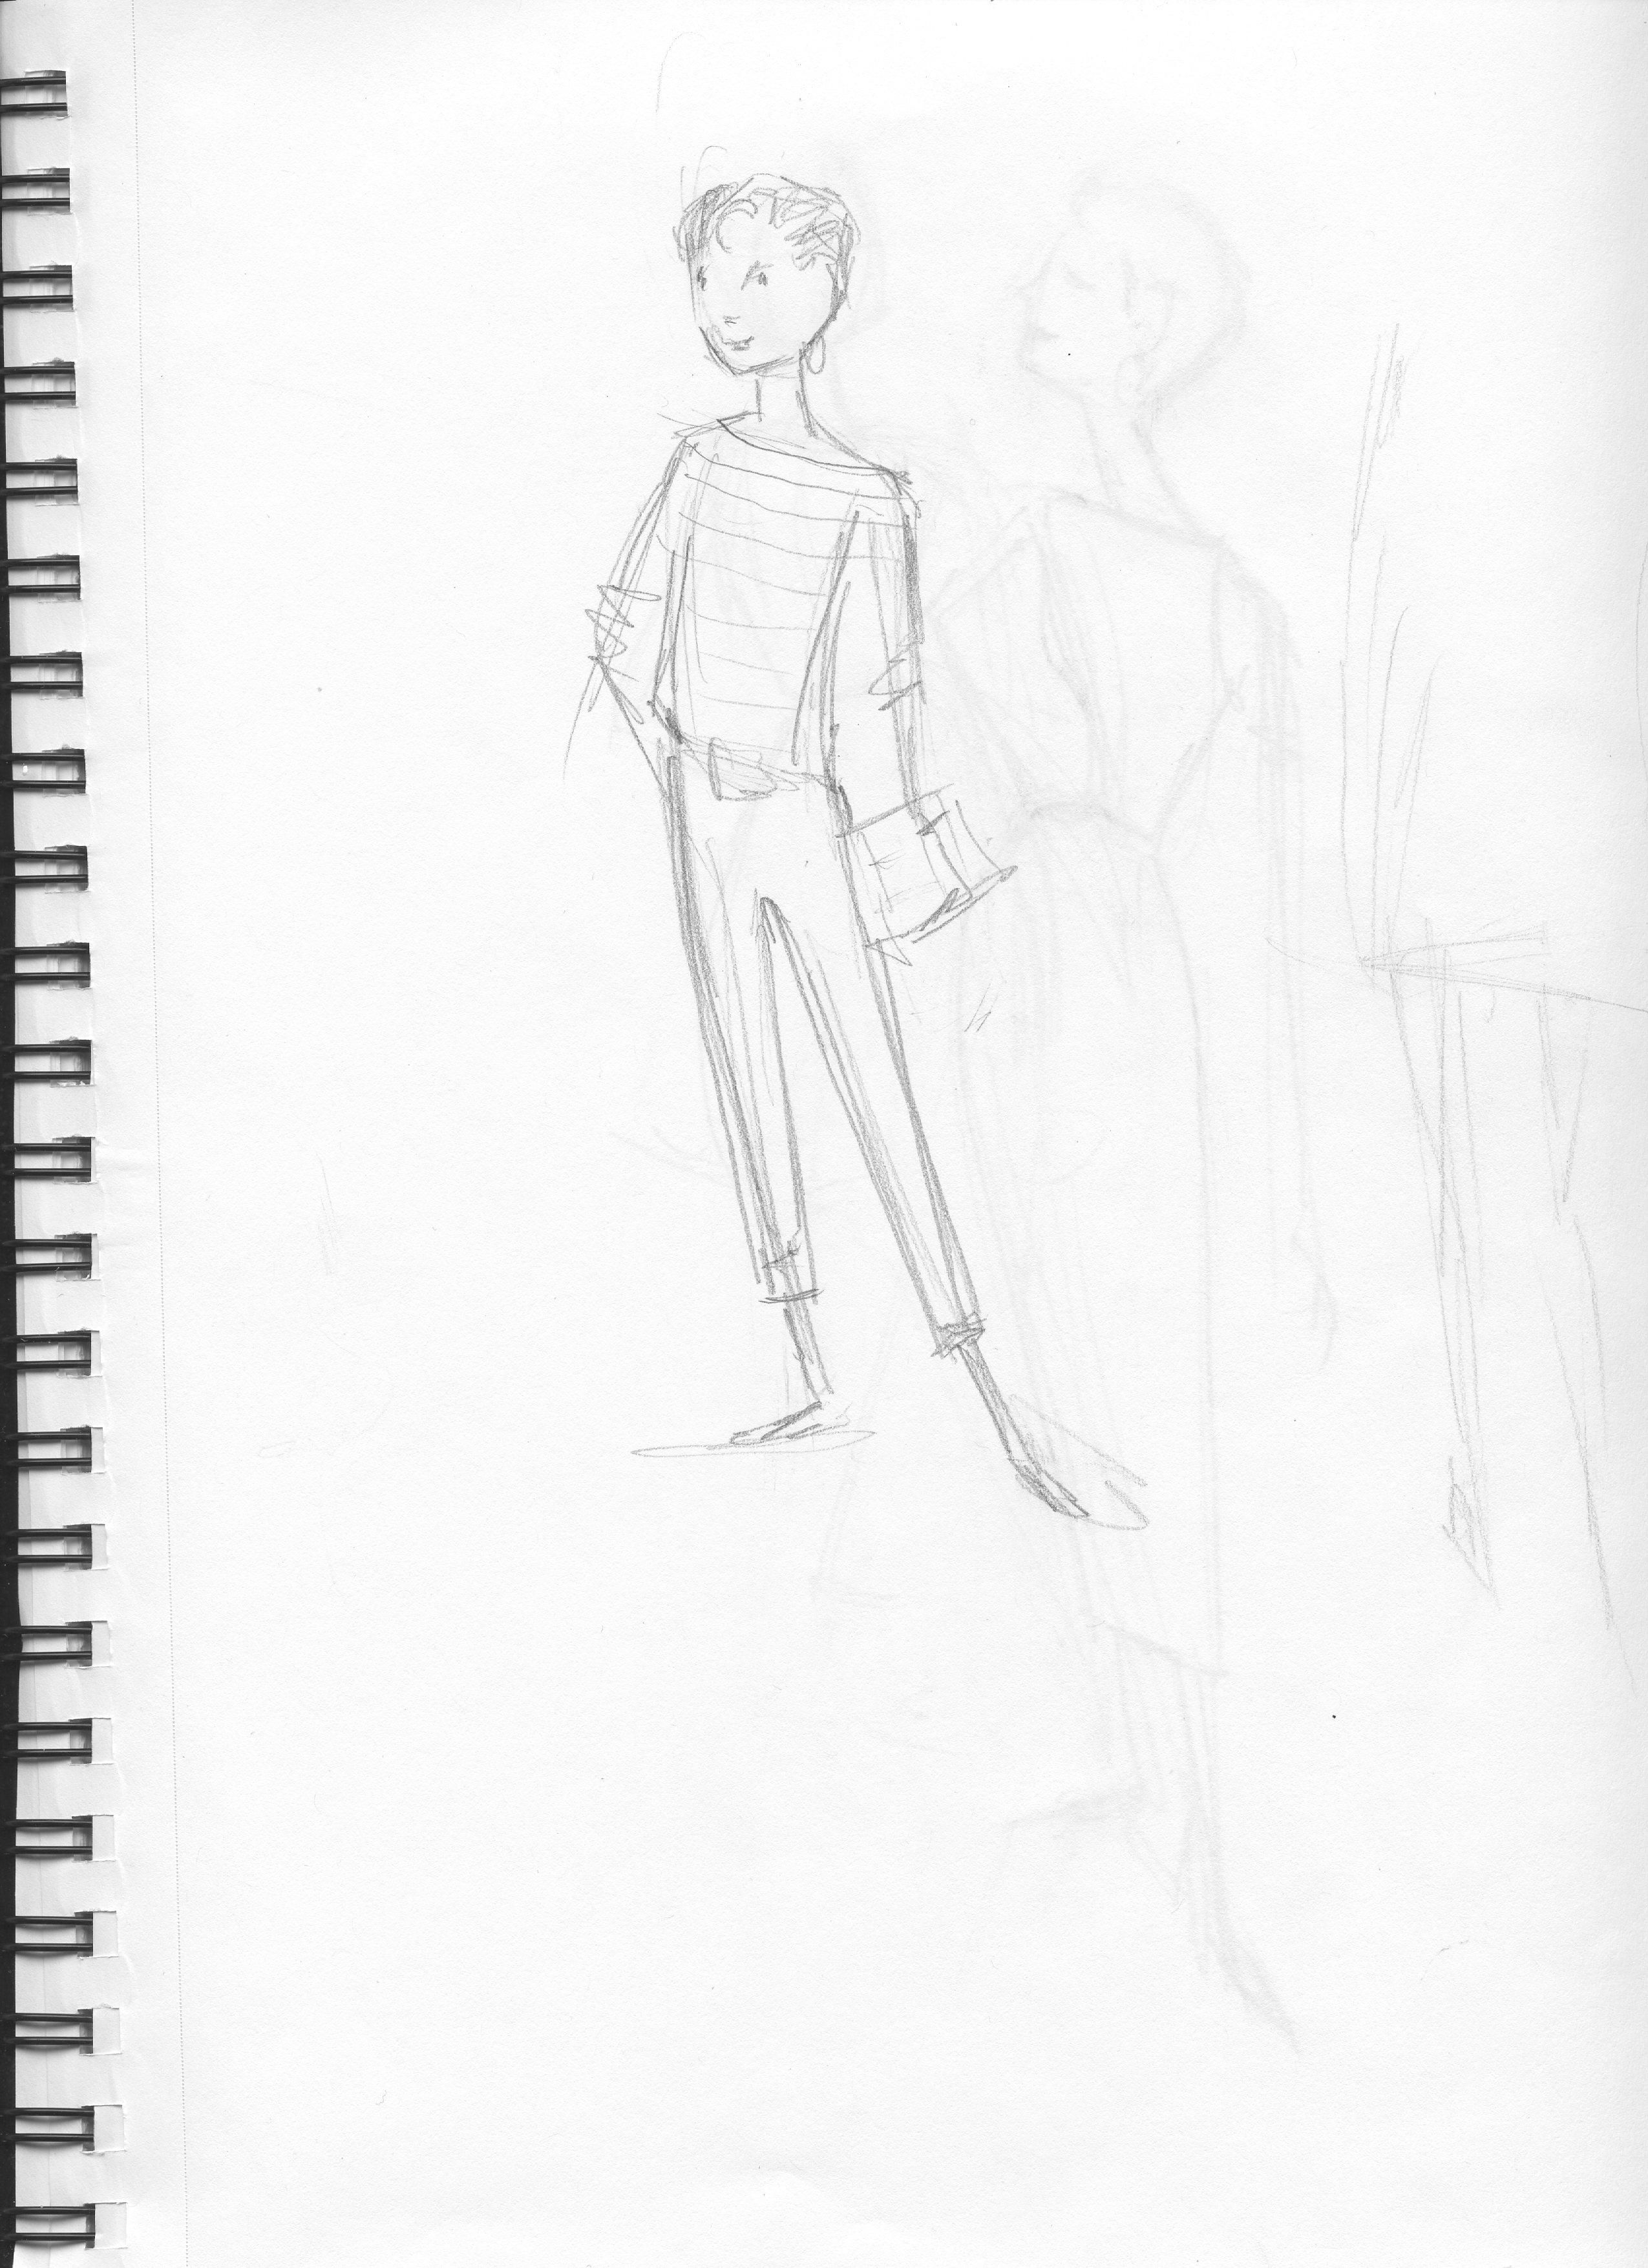 *(SKETCHES)* a walk down memory lane - image 10 - student project